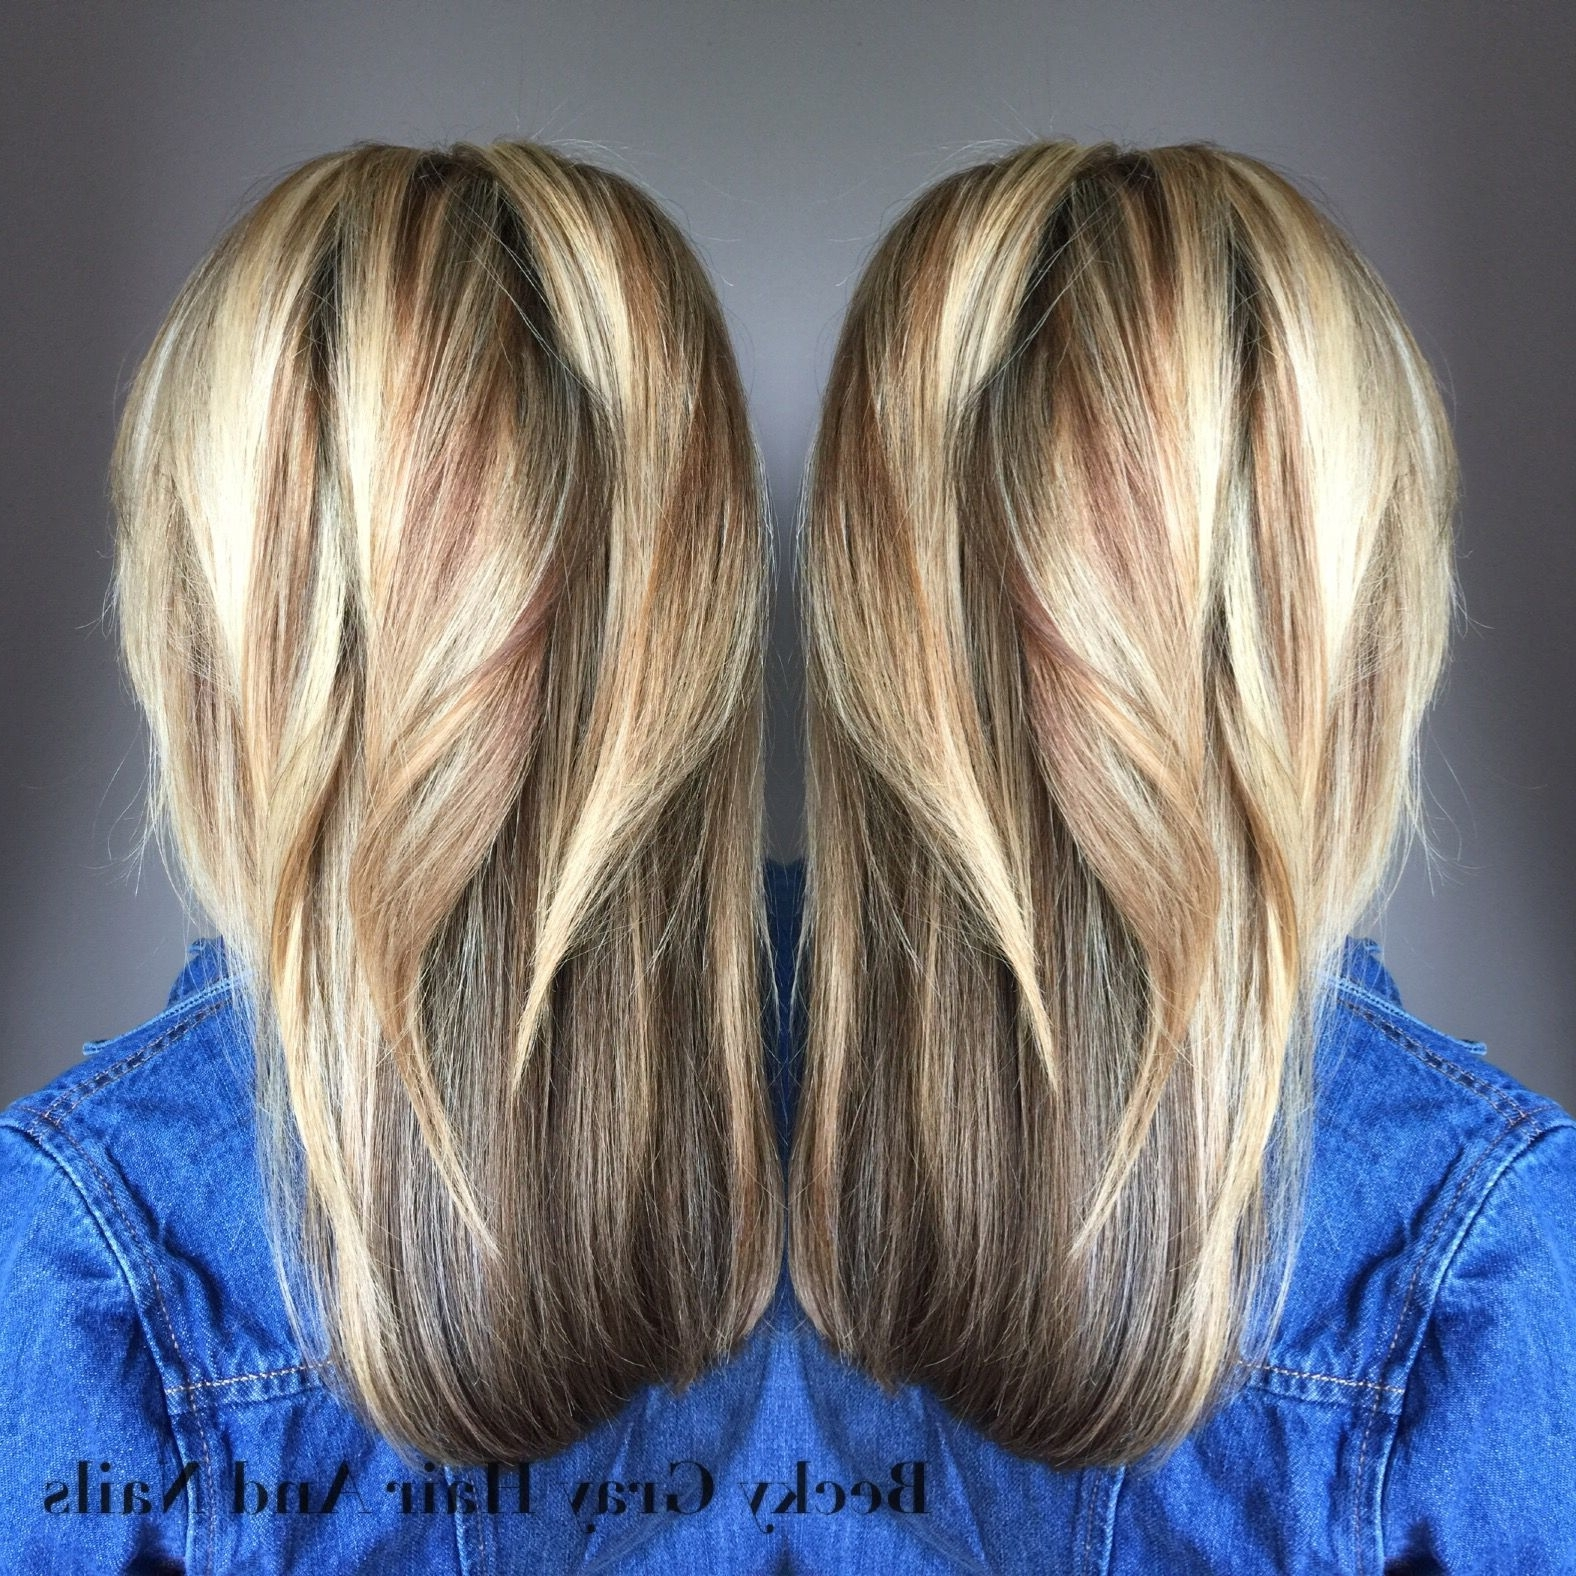 Half Head Of Ash And Pearl Blonde Highlights And Cut And Blowdry With Regard To Well Known Pearl Blonde Highlights (View 5 of 20)